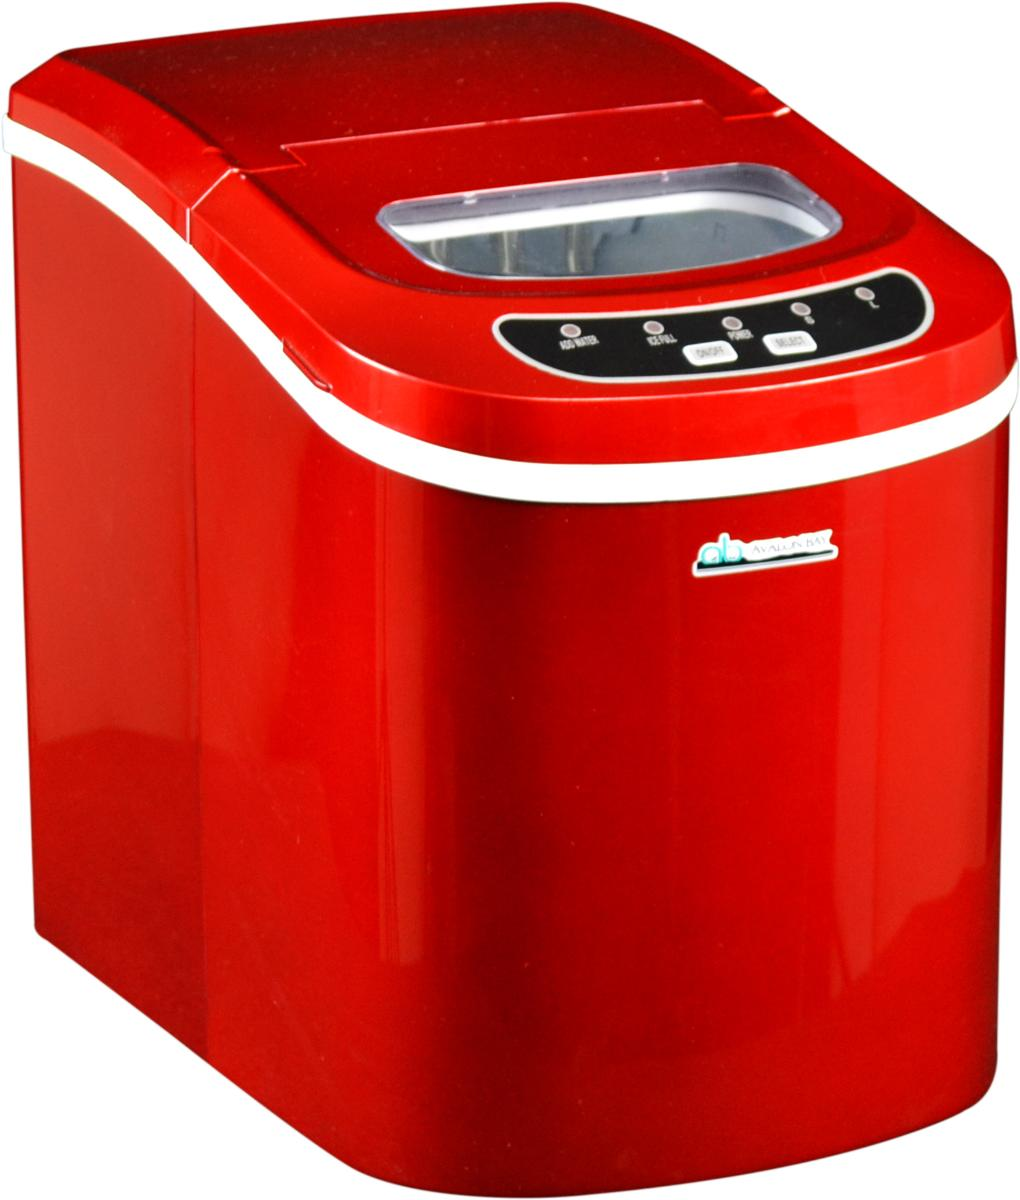 Avalon Bay AB-ICE26R Portable Ice Maker, Red